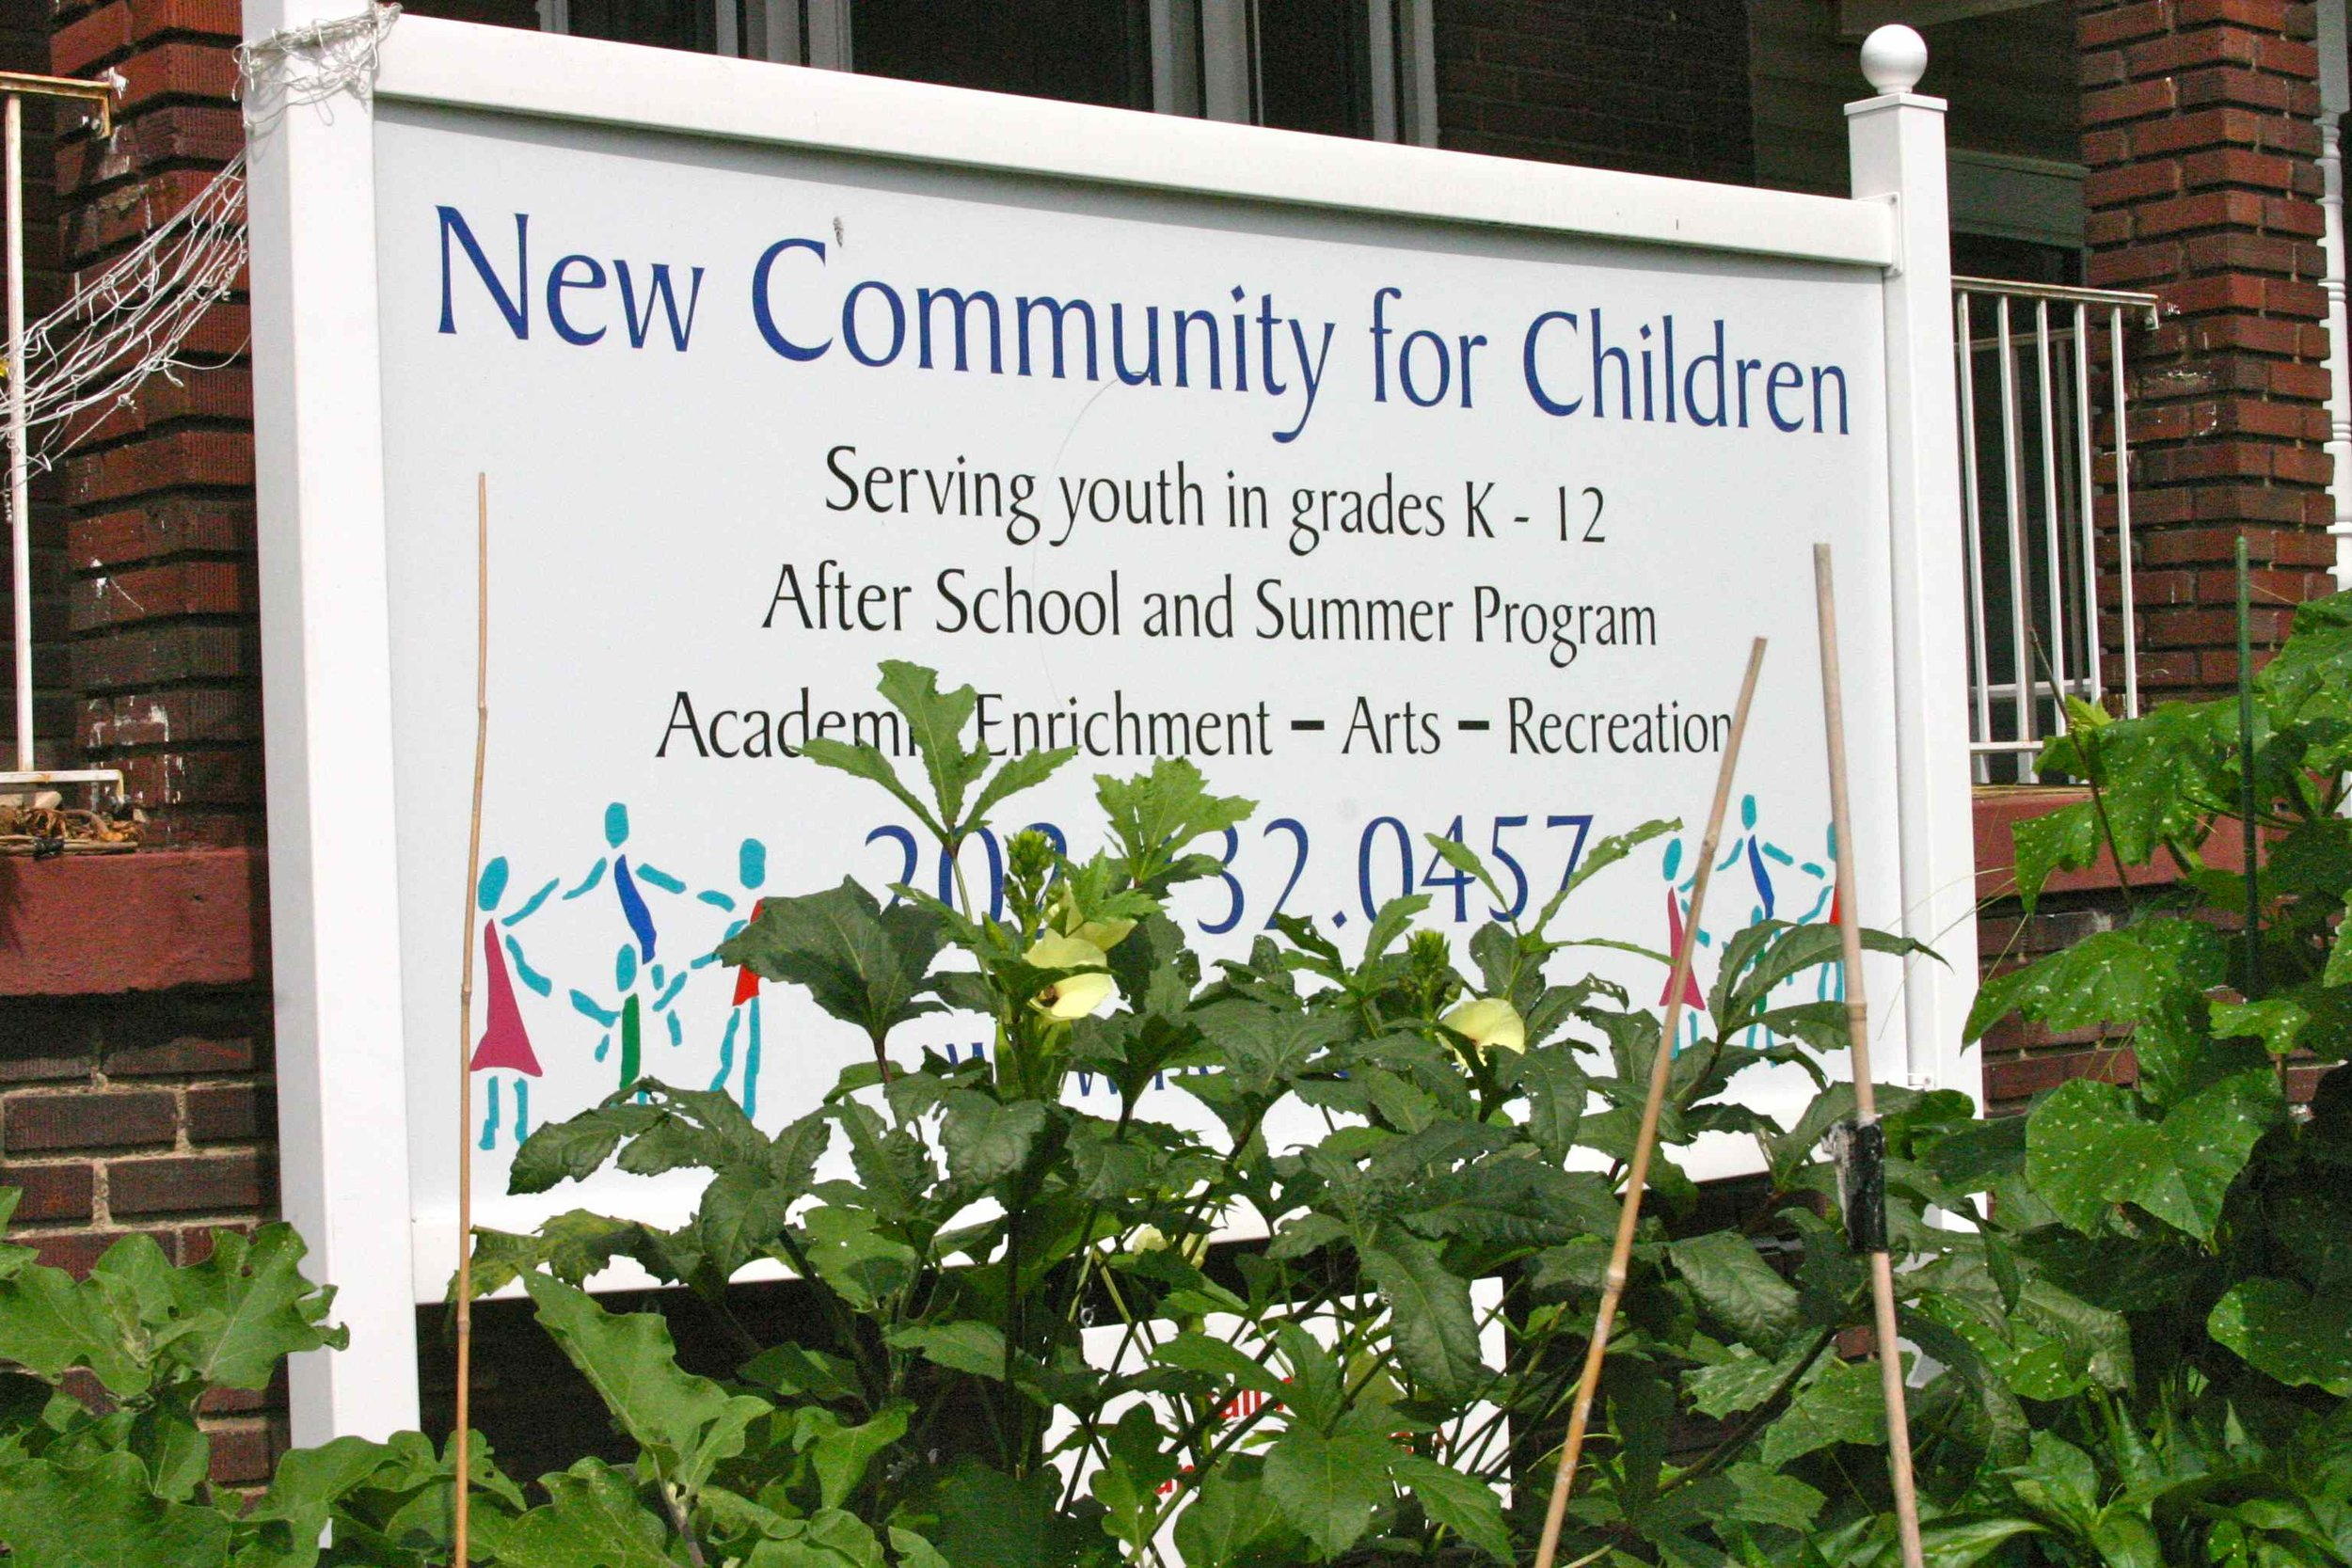 New Community for Children, Shaw-Howard, Washington, DC, July 2012